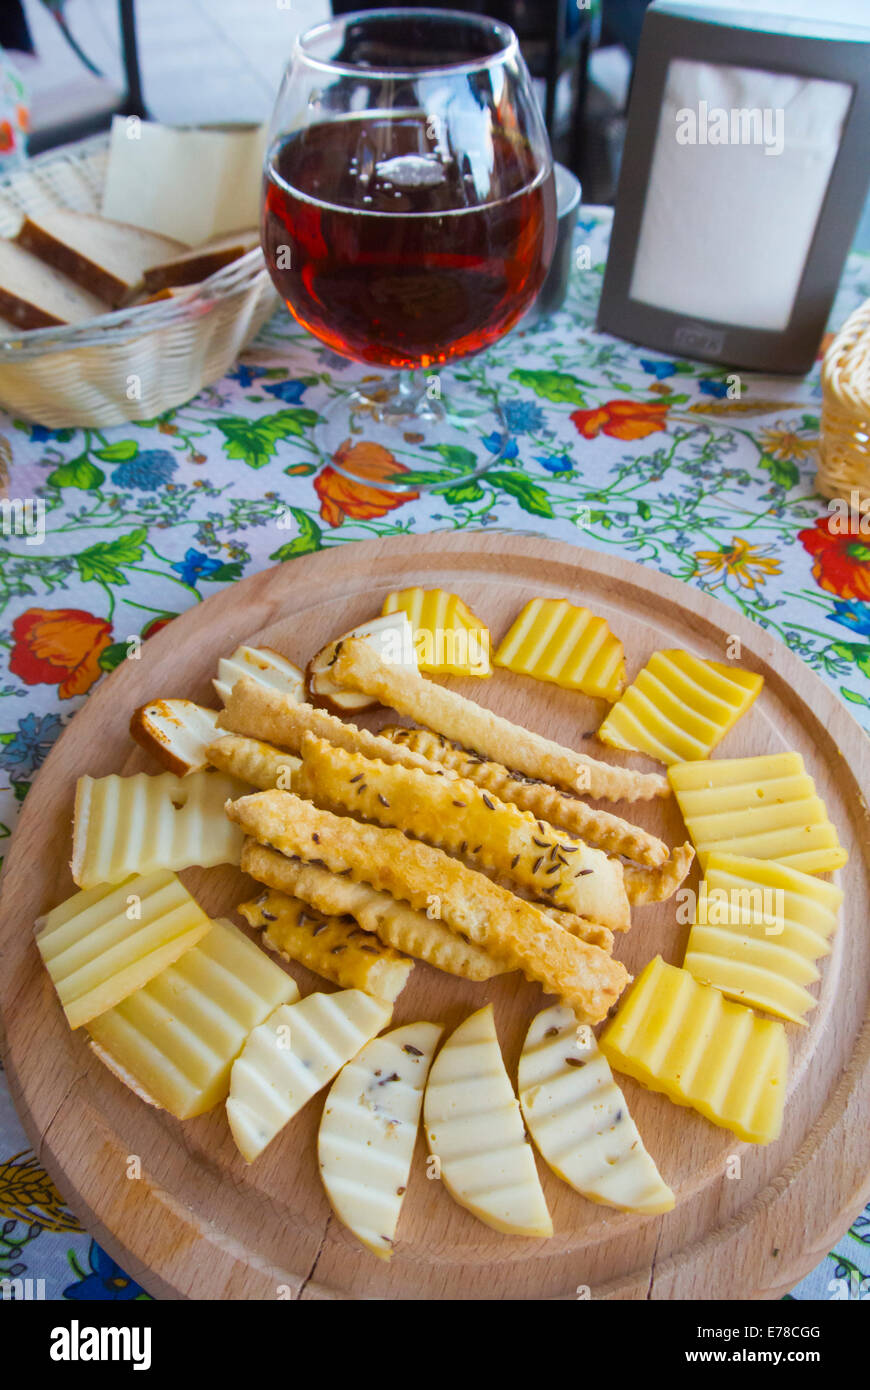 Cheese snack plate to go along with beer, main square, Vilnius, Lithuania, Europe - Stock Image